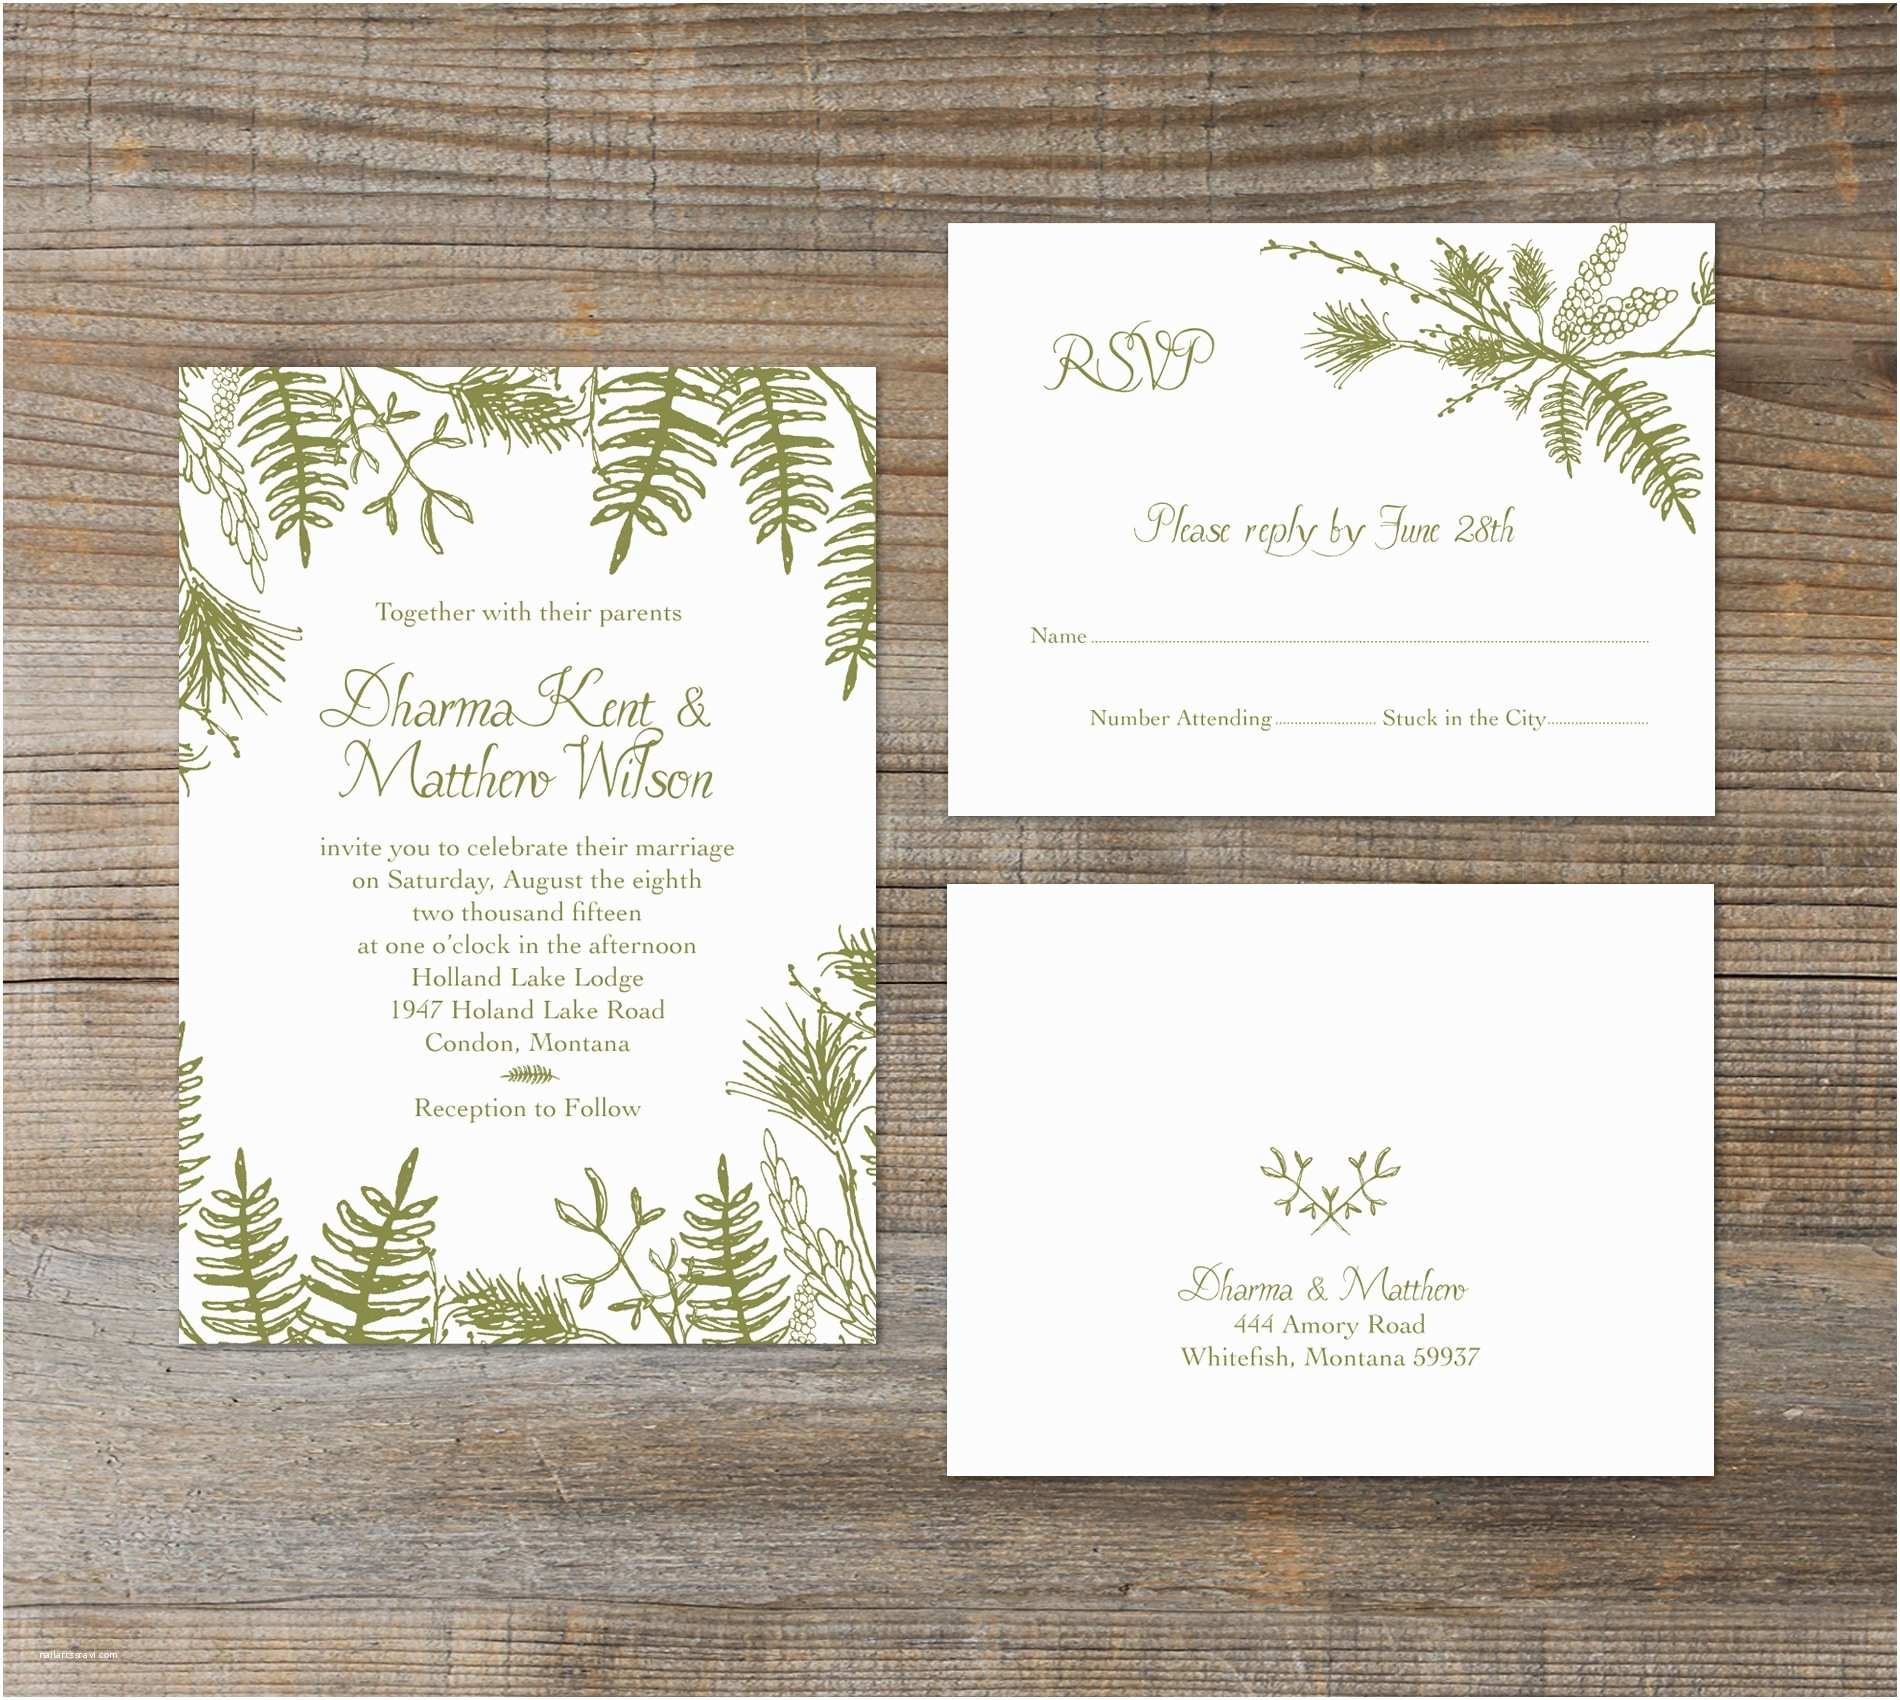 Impressive Wedding Invitations 8 formidable Woodland Wedding Invitations You Must See